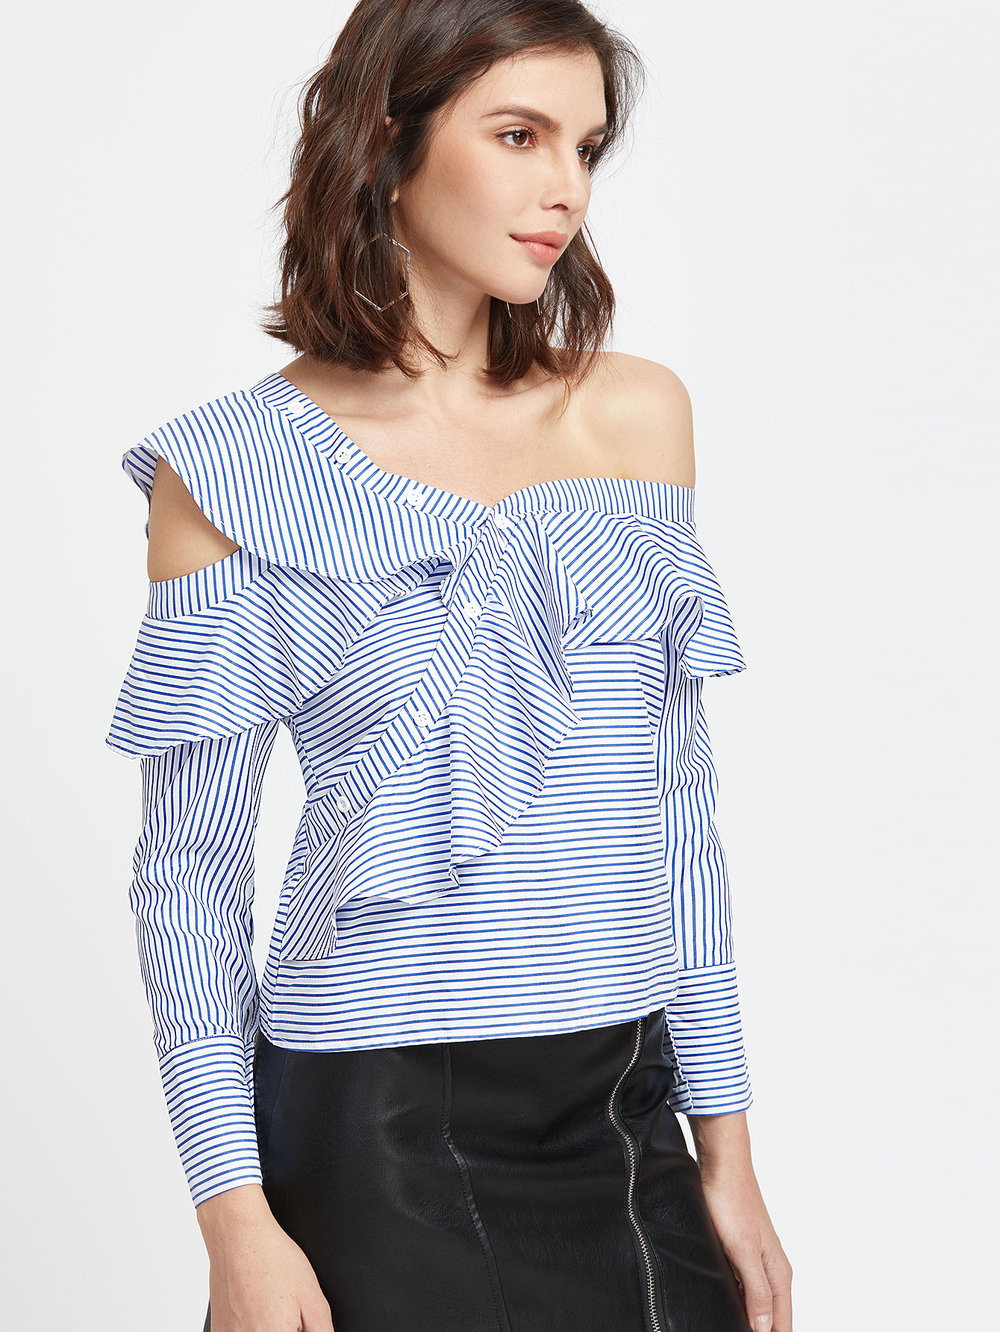 Shein Blue Striped Asymmetric Cold Shoulder Ruffle Trim Top